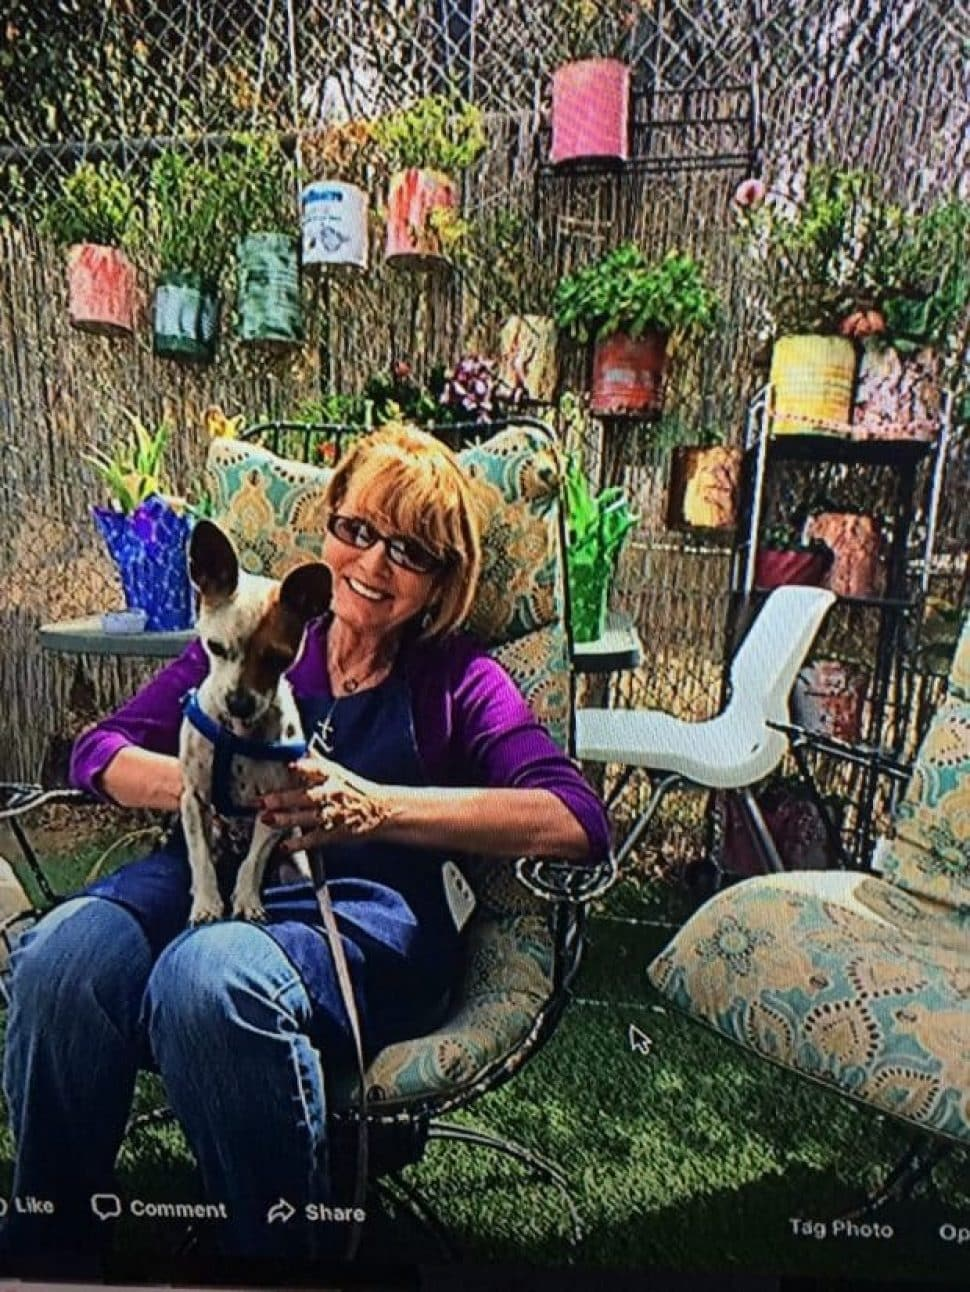 Smiling woman with short reddish hair and sunglasses holding a Chihuahua mix with big brown ears in her lap. The woman is wearing a purple top and jeans and is sitting in a garden area with bright pots hanging on a wooden wall.